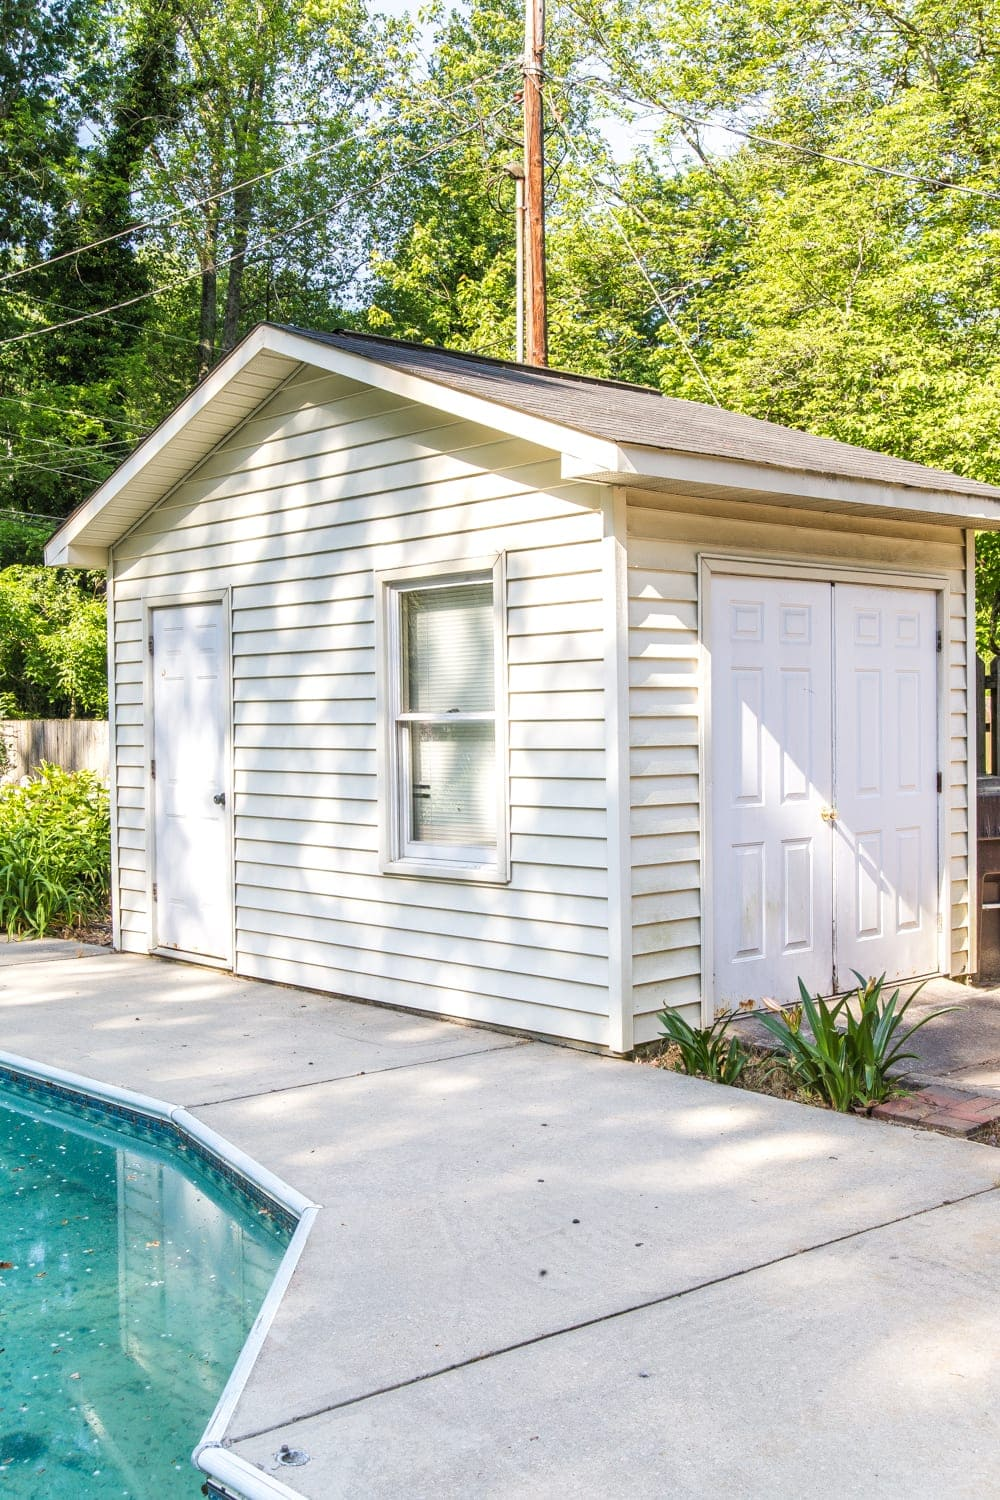 How to Paint Vinyl Siding & Pool Shed Makeover - Bless'er House